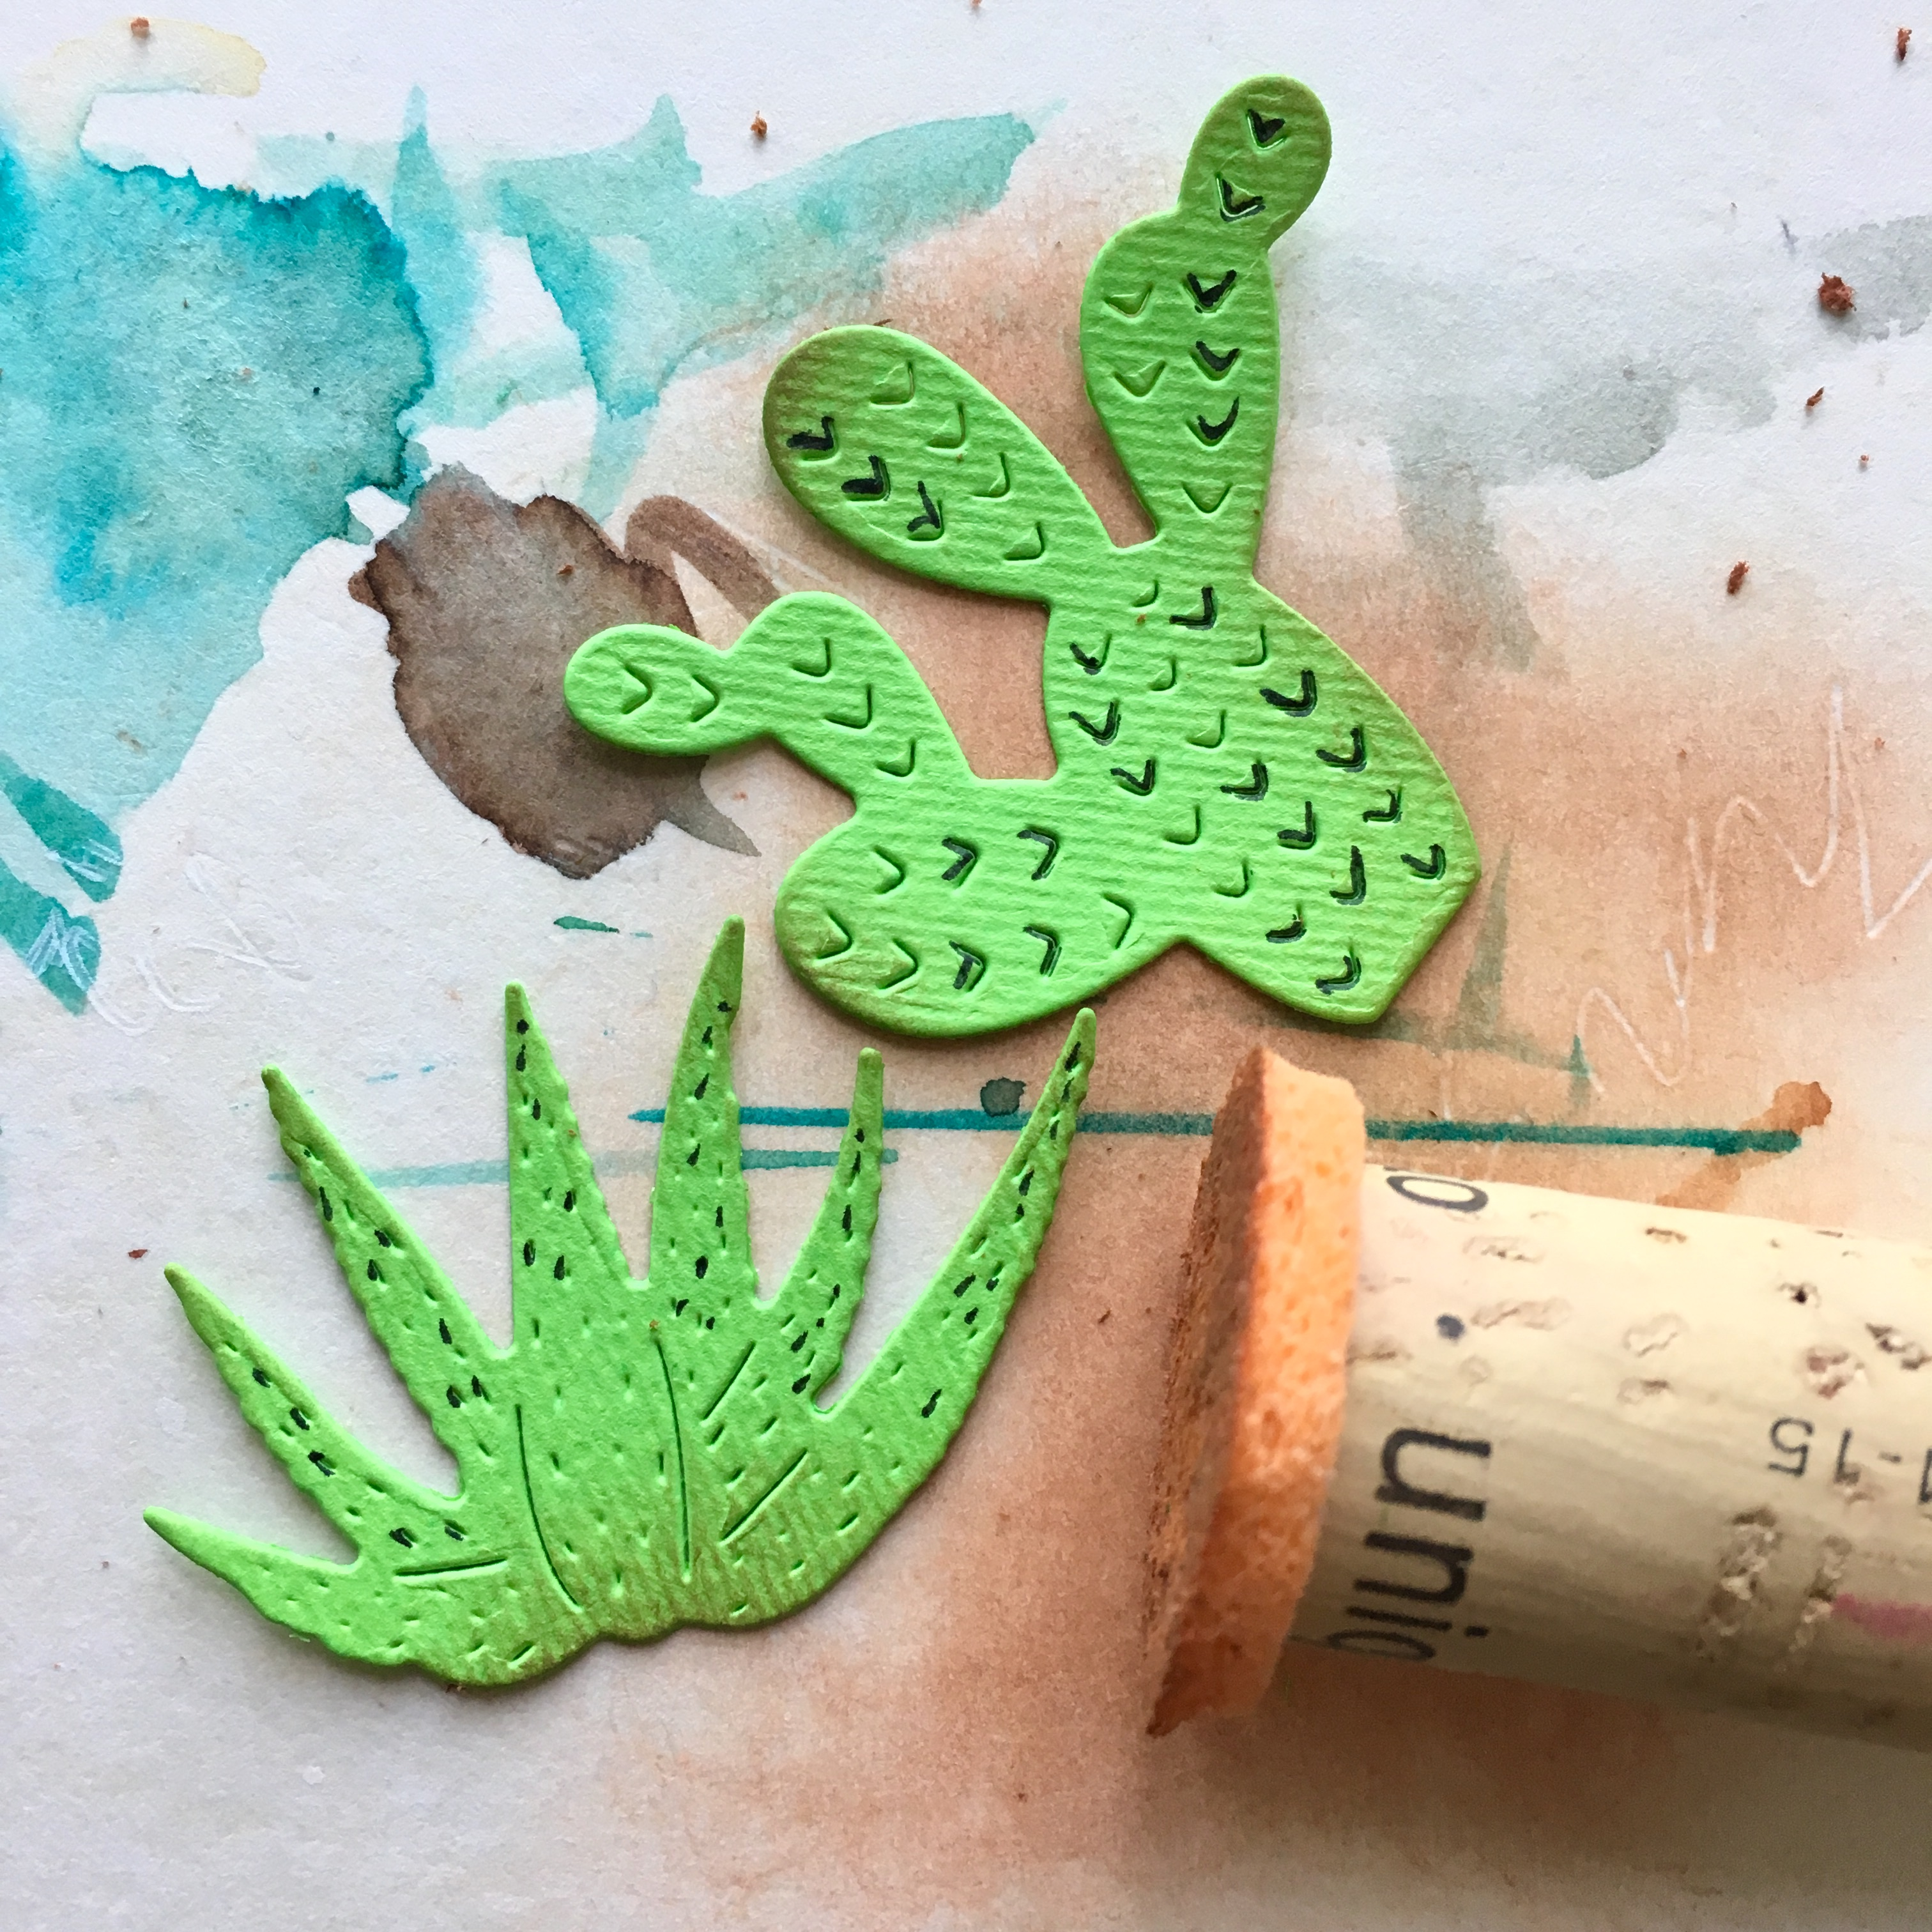 blending the cactus shapes with my favourite blending tool - cork with a kitchen sponge